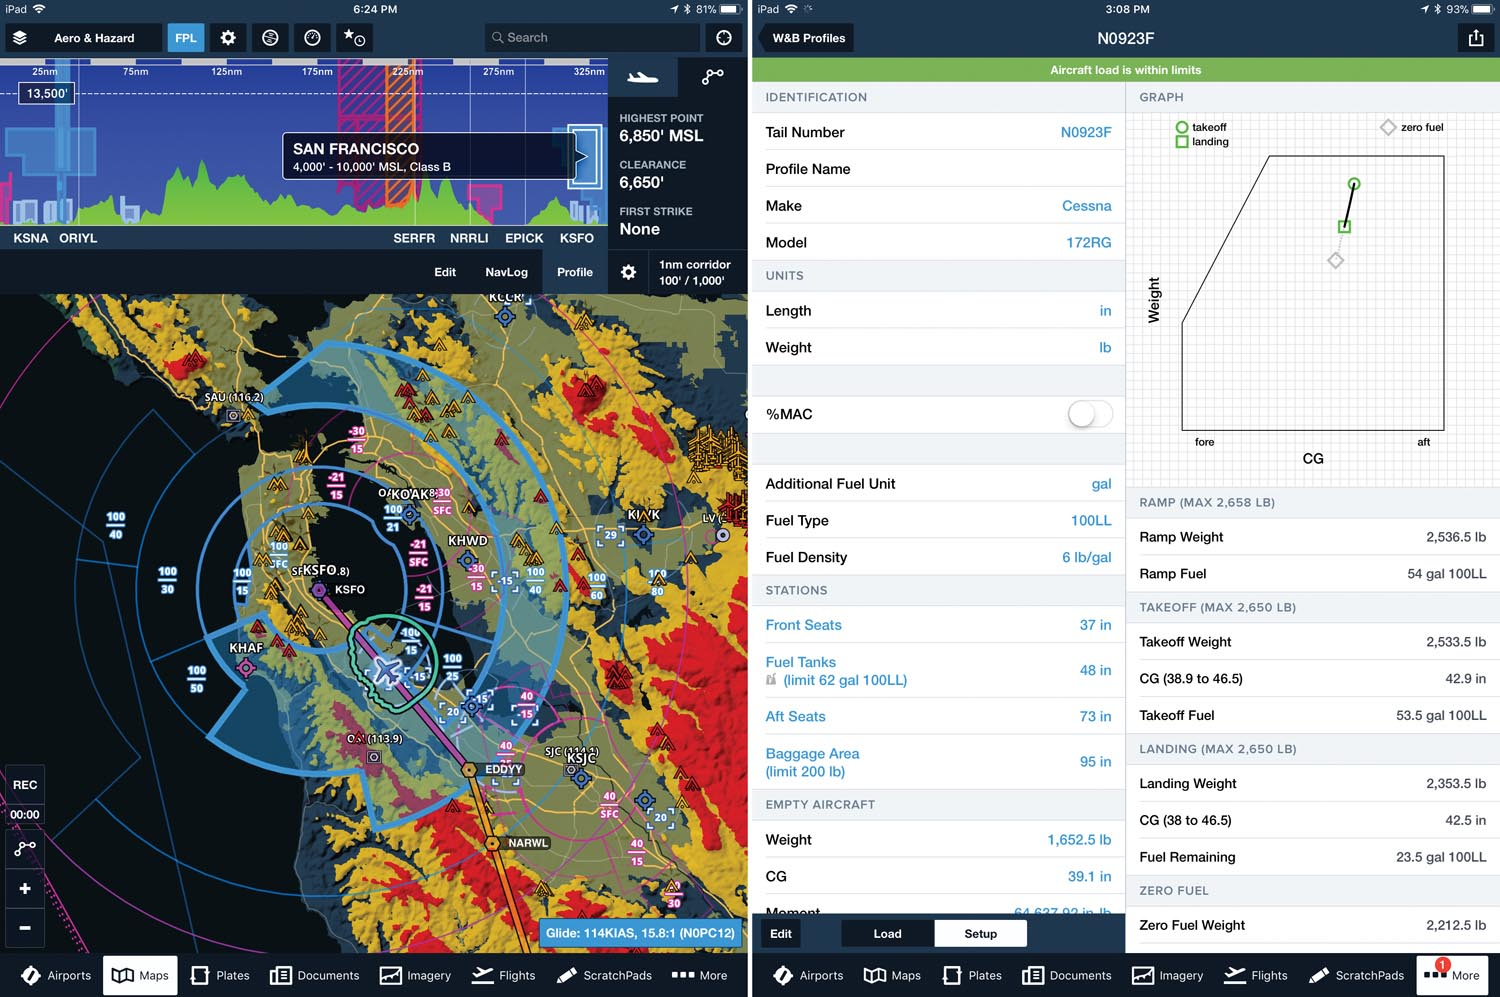 (Left) ForeFlight hazard advisor with profile view for San Francisco International Airport. (Right) ForeFlight also provides weight and balance information and alerts you if the aircraft is not within limits.